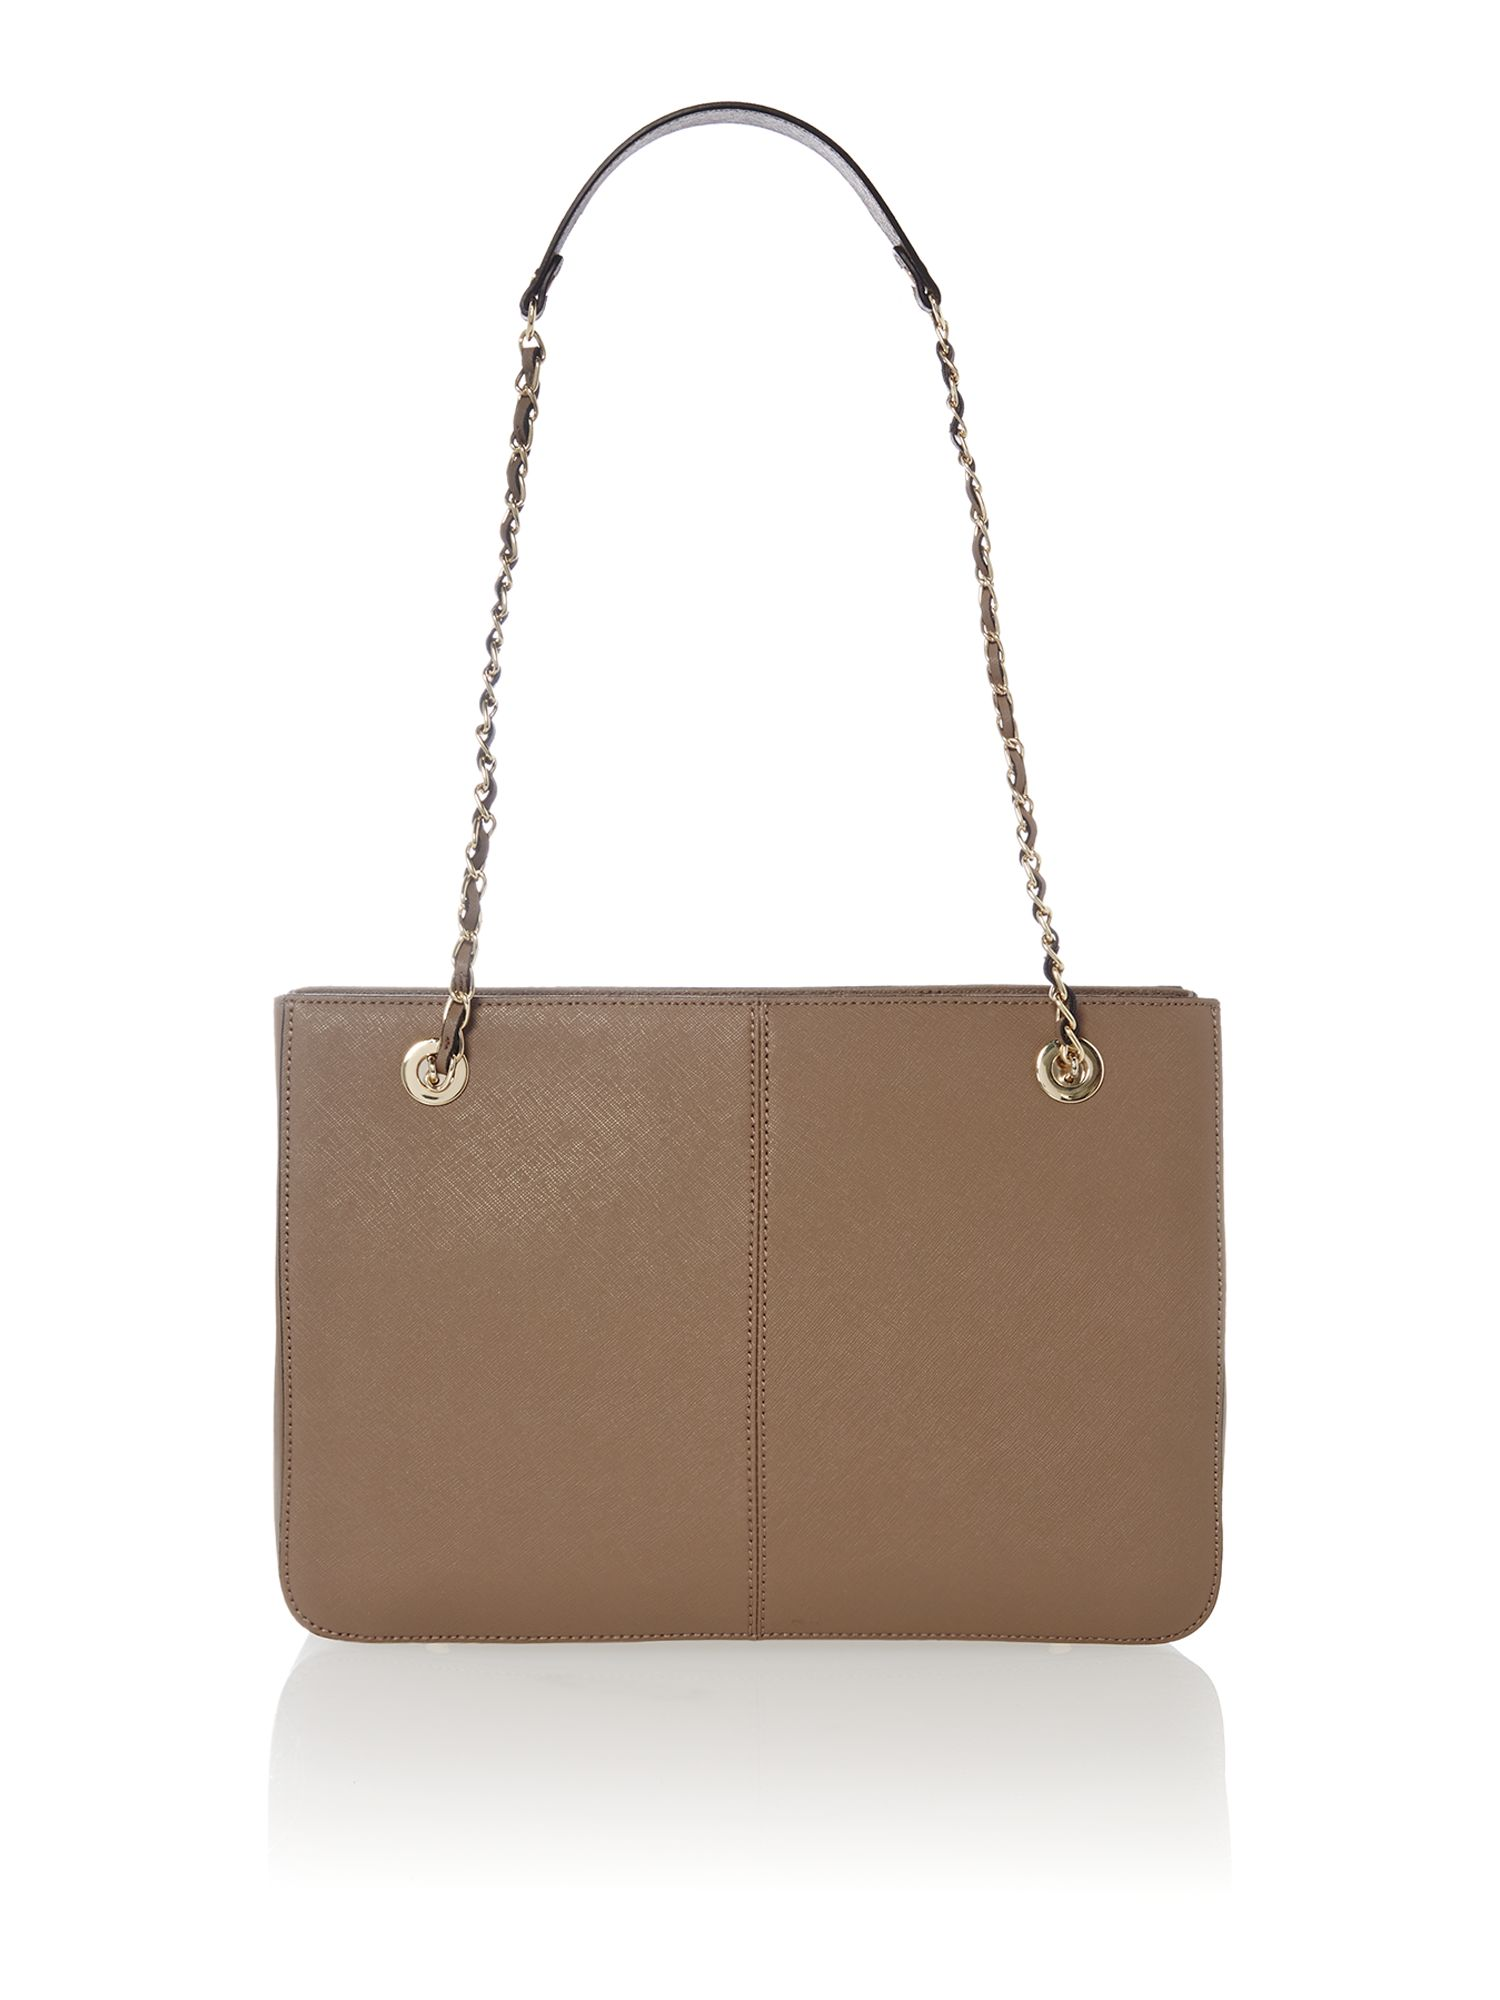 Saffiano brown medium chain tote bag